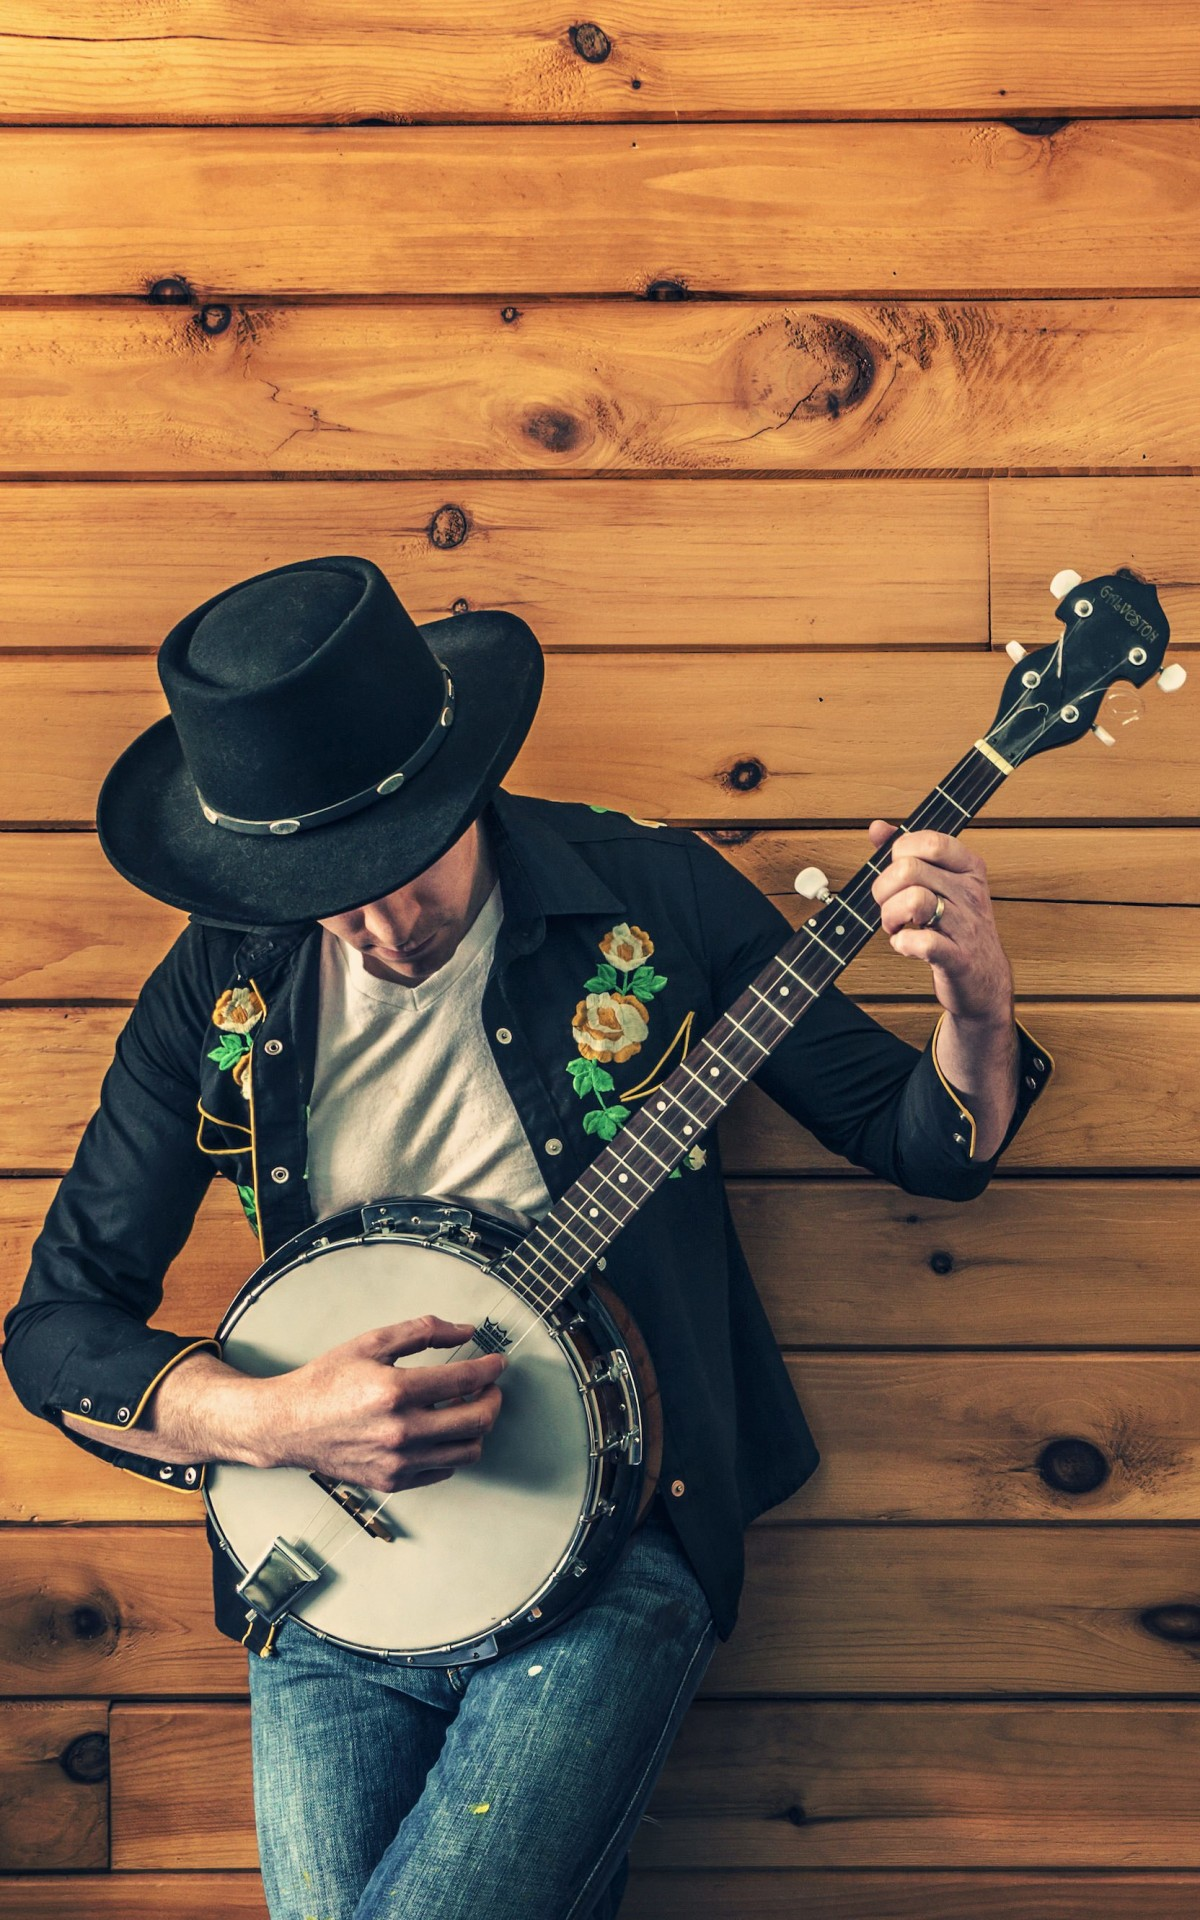 Banjo Player Wallpaper for Amazon Kindle Fire HDX